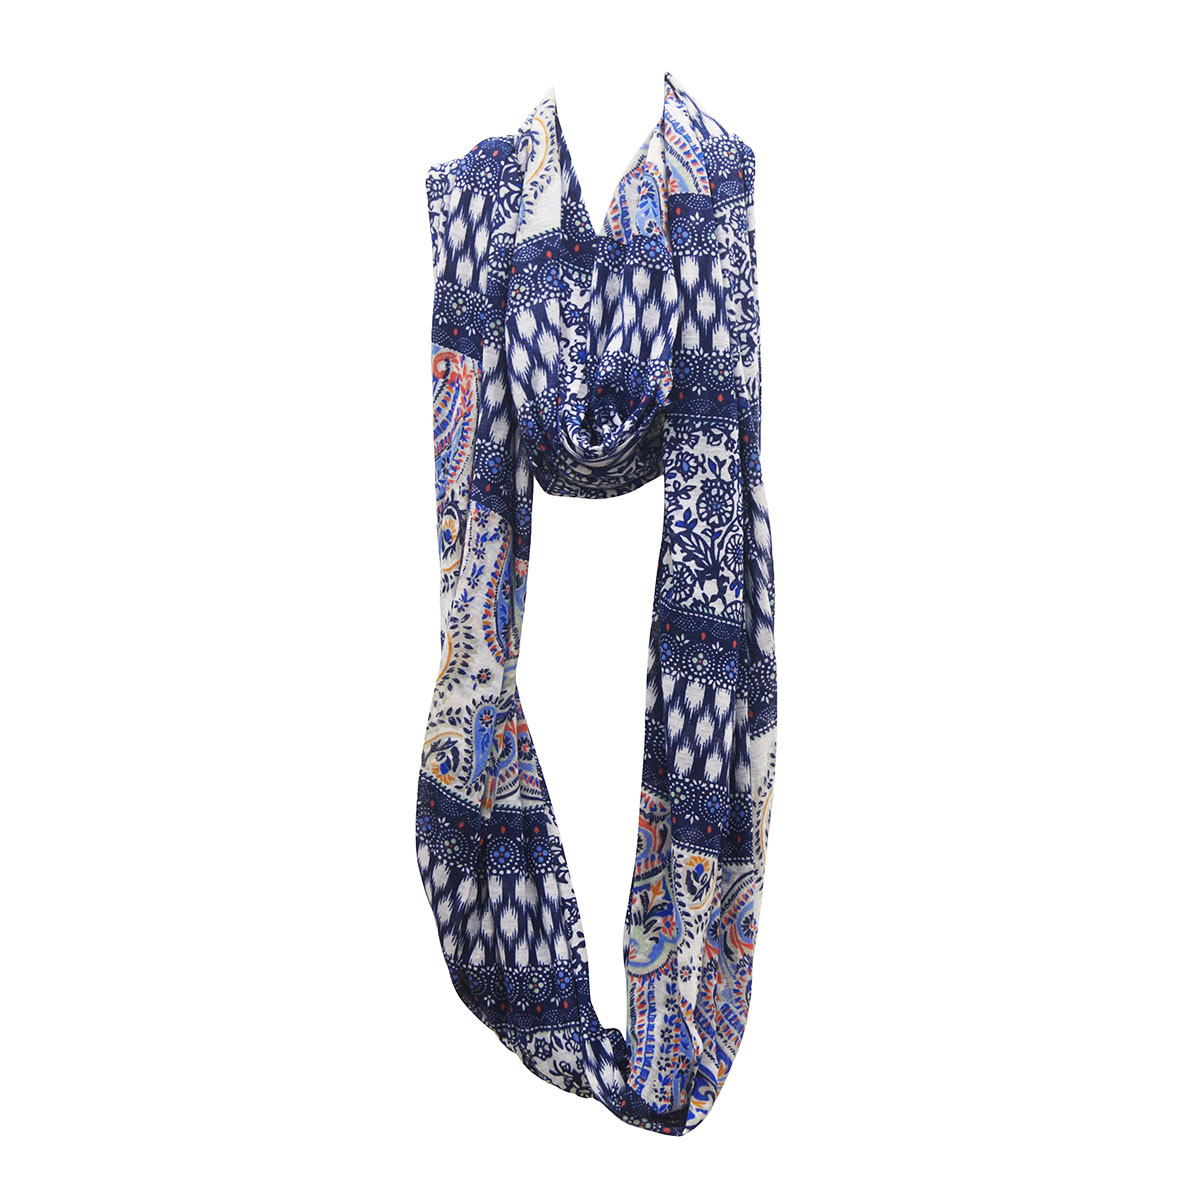 Viscose Loop Scarves Manufacturers